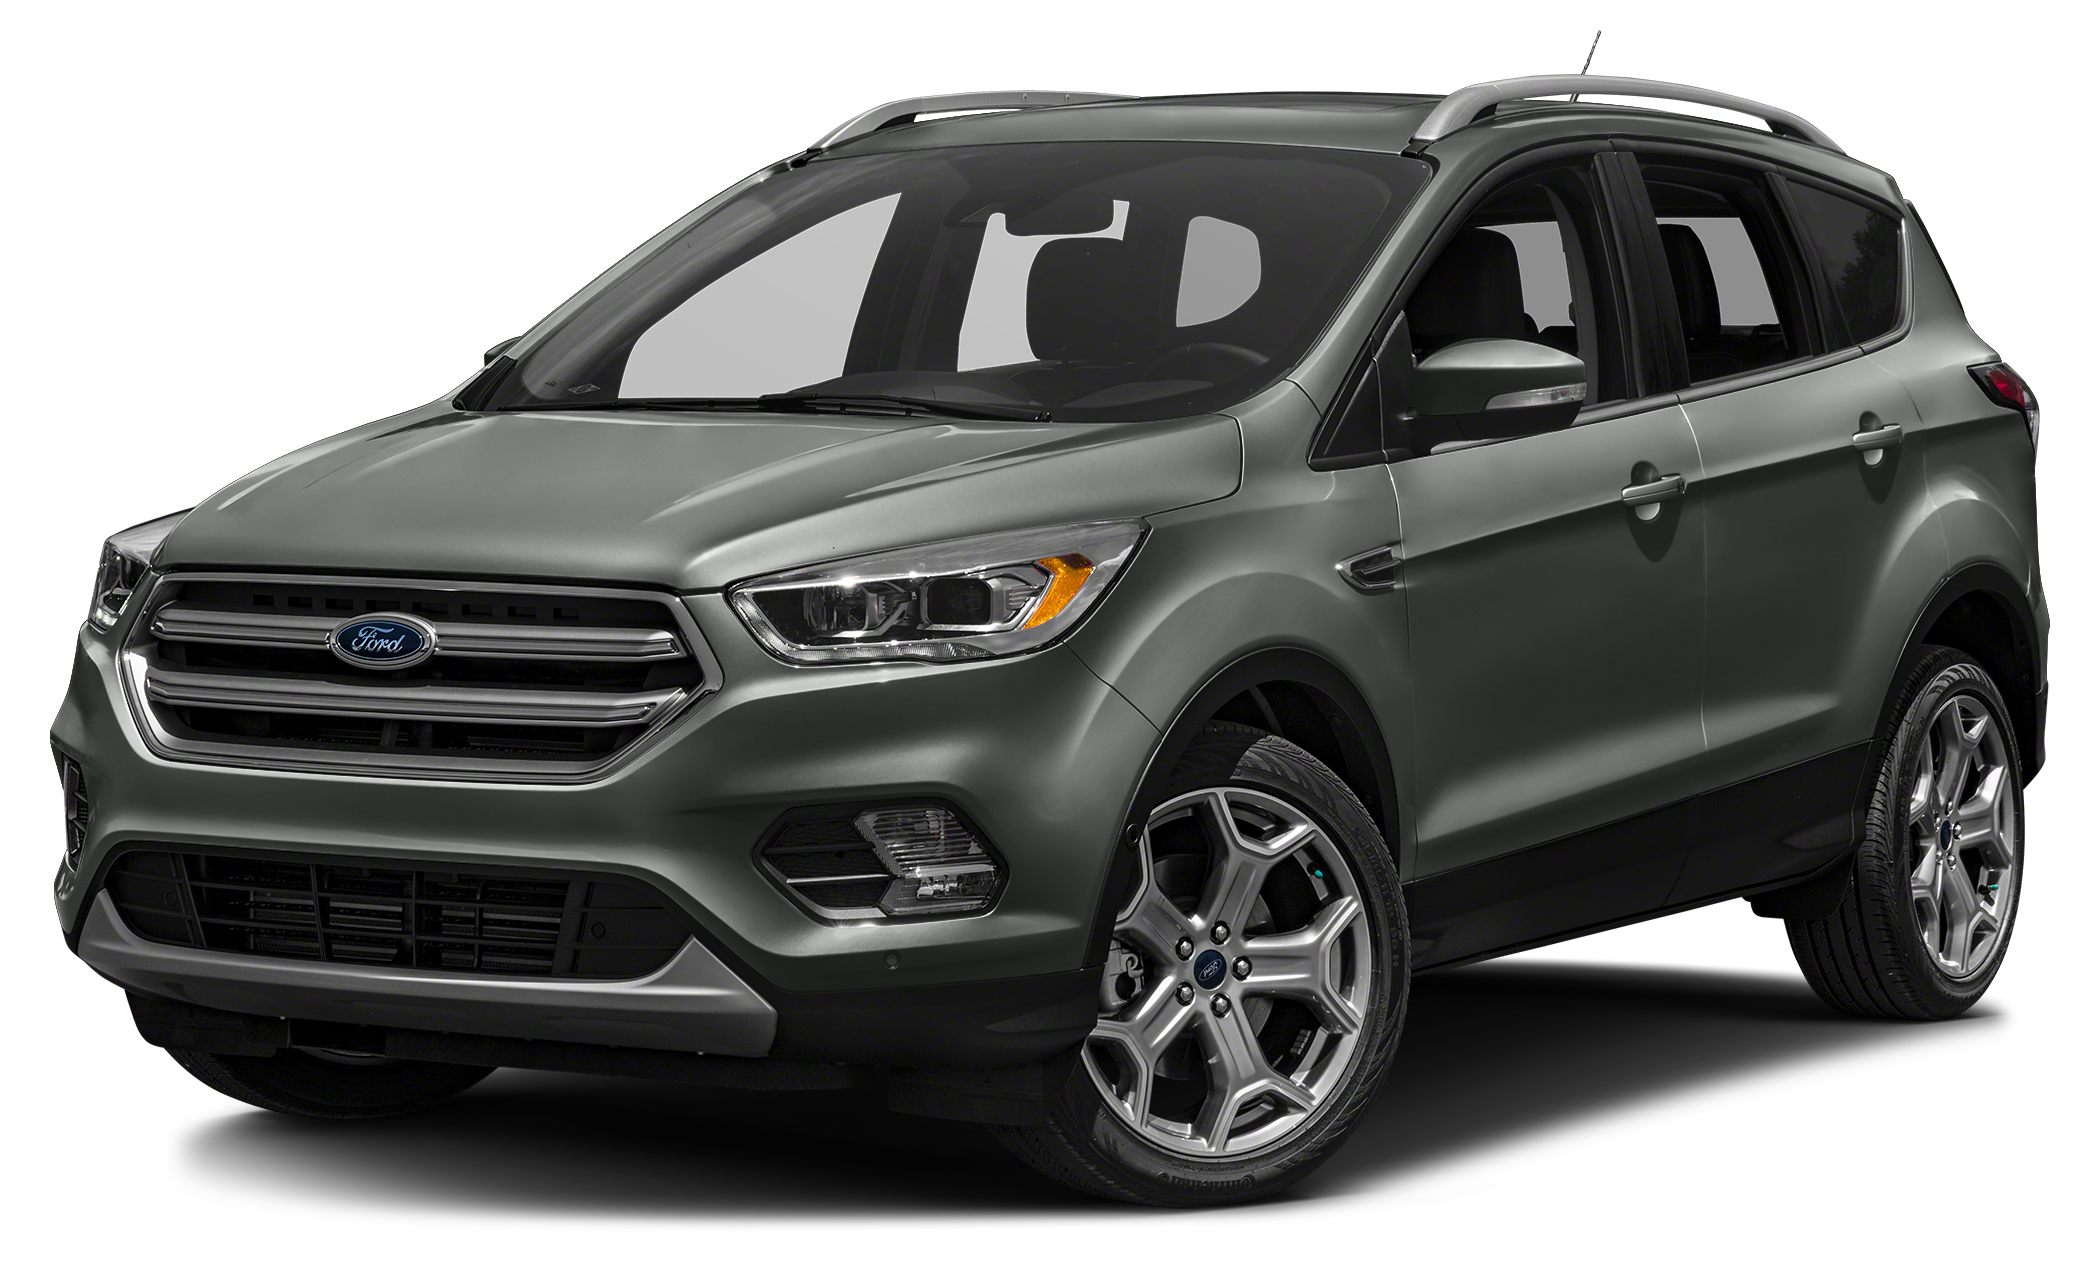 2017 Ford Escape Titanium Miles 4Color Magnetic Stock 15534J VIN 1FMCU9JD6HUA73252